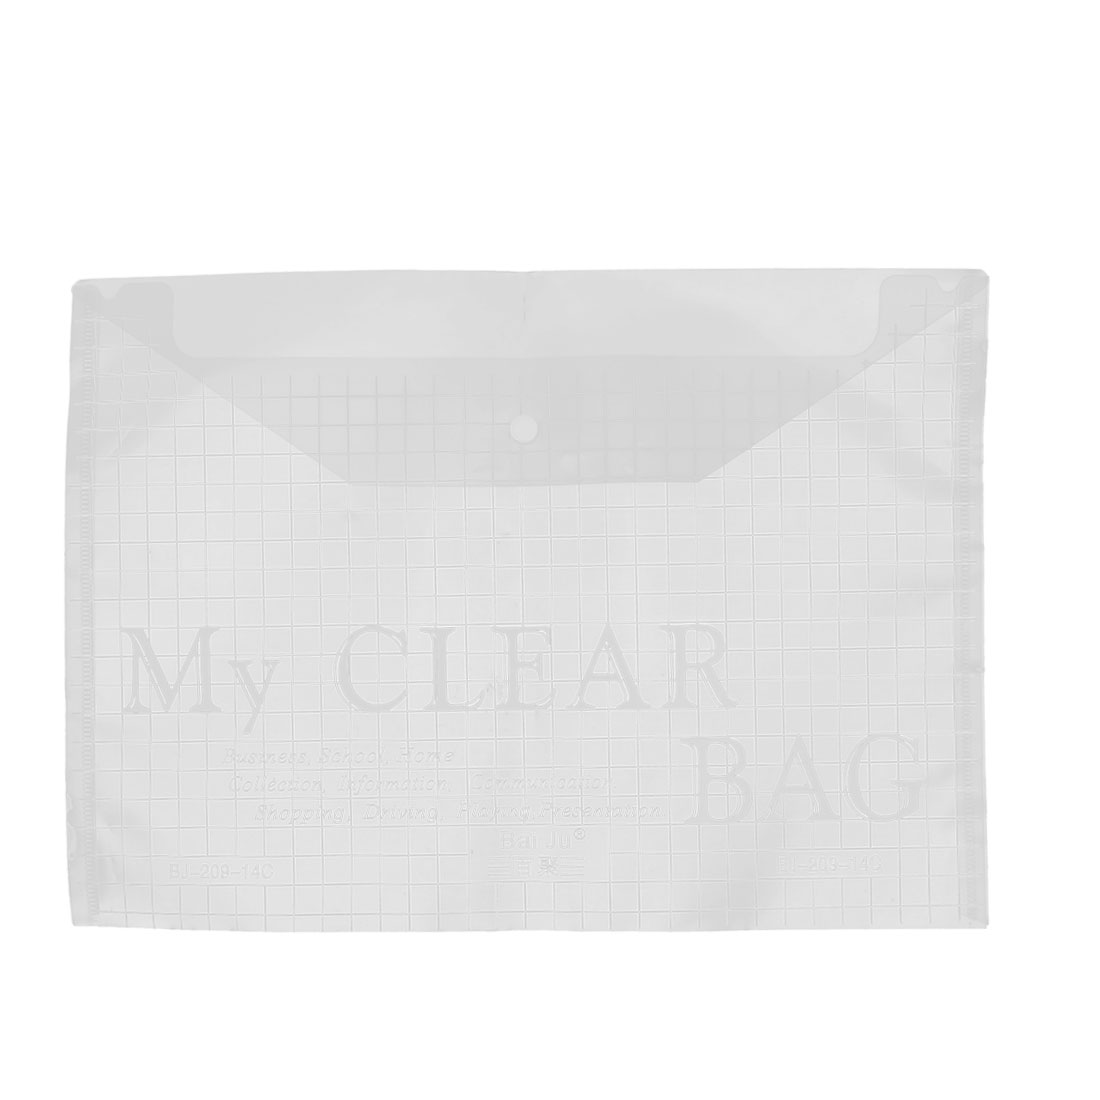 White Clear Plastic Press Stud Button Closure A4 Paper File Document Holder Organizer Storage